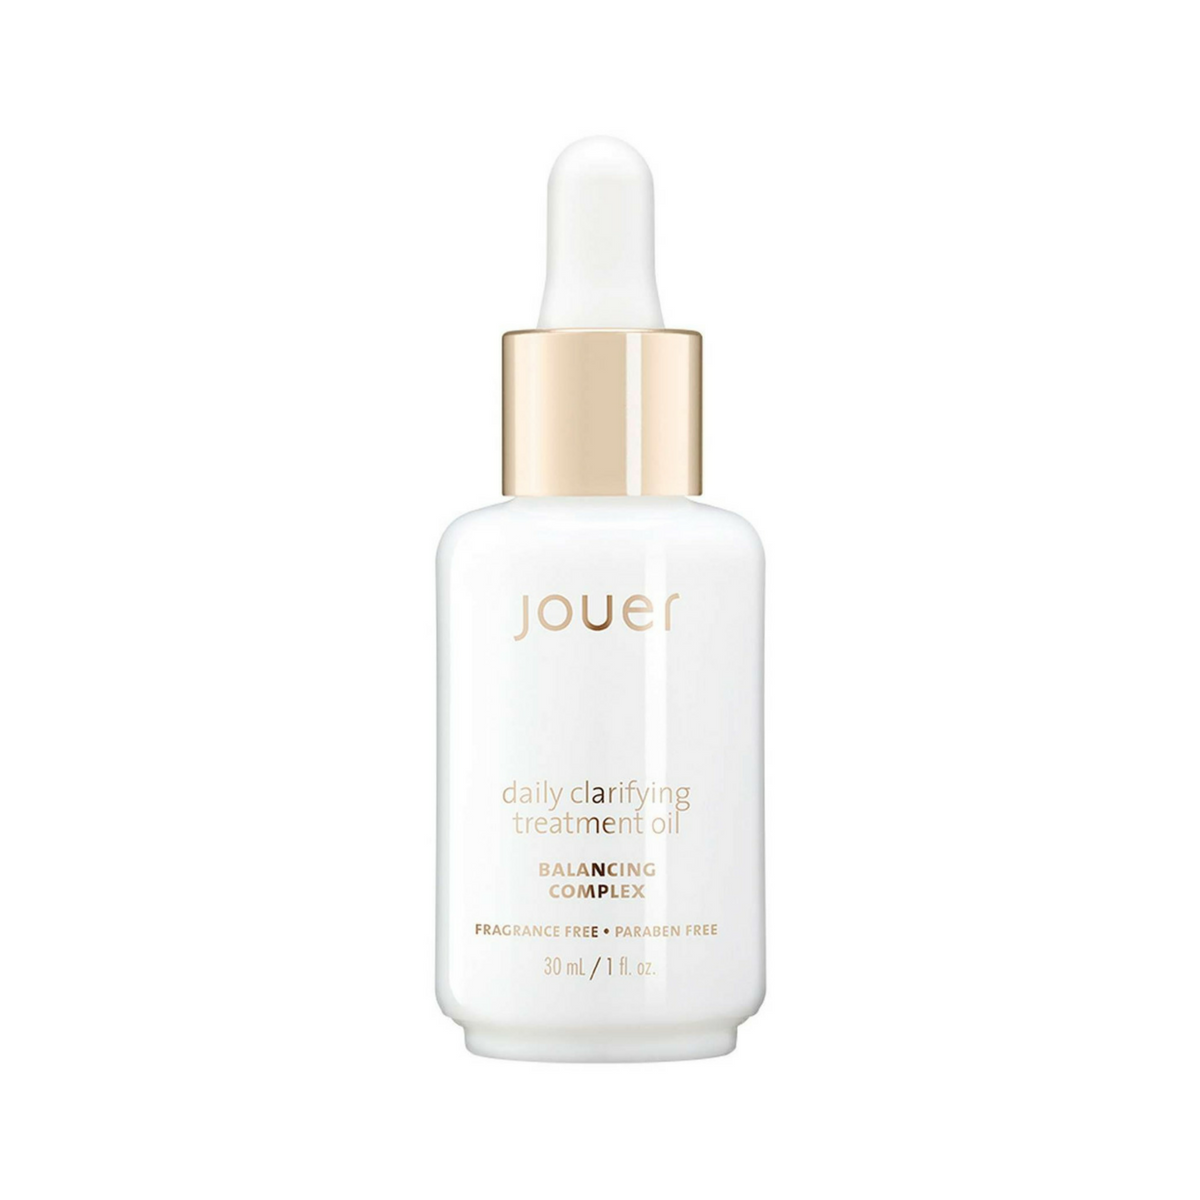 Jouer Daily Clarifying Treatment Oil 30ml